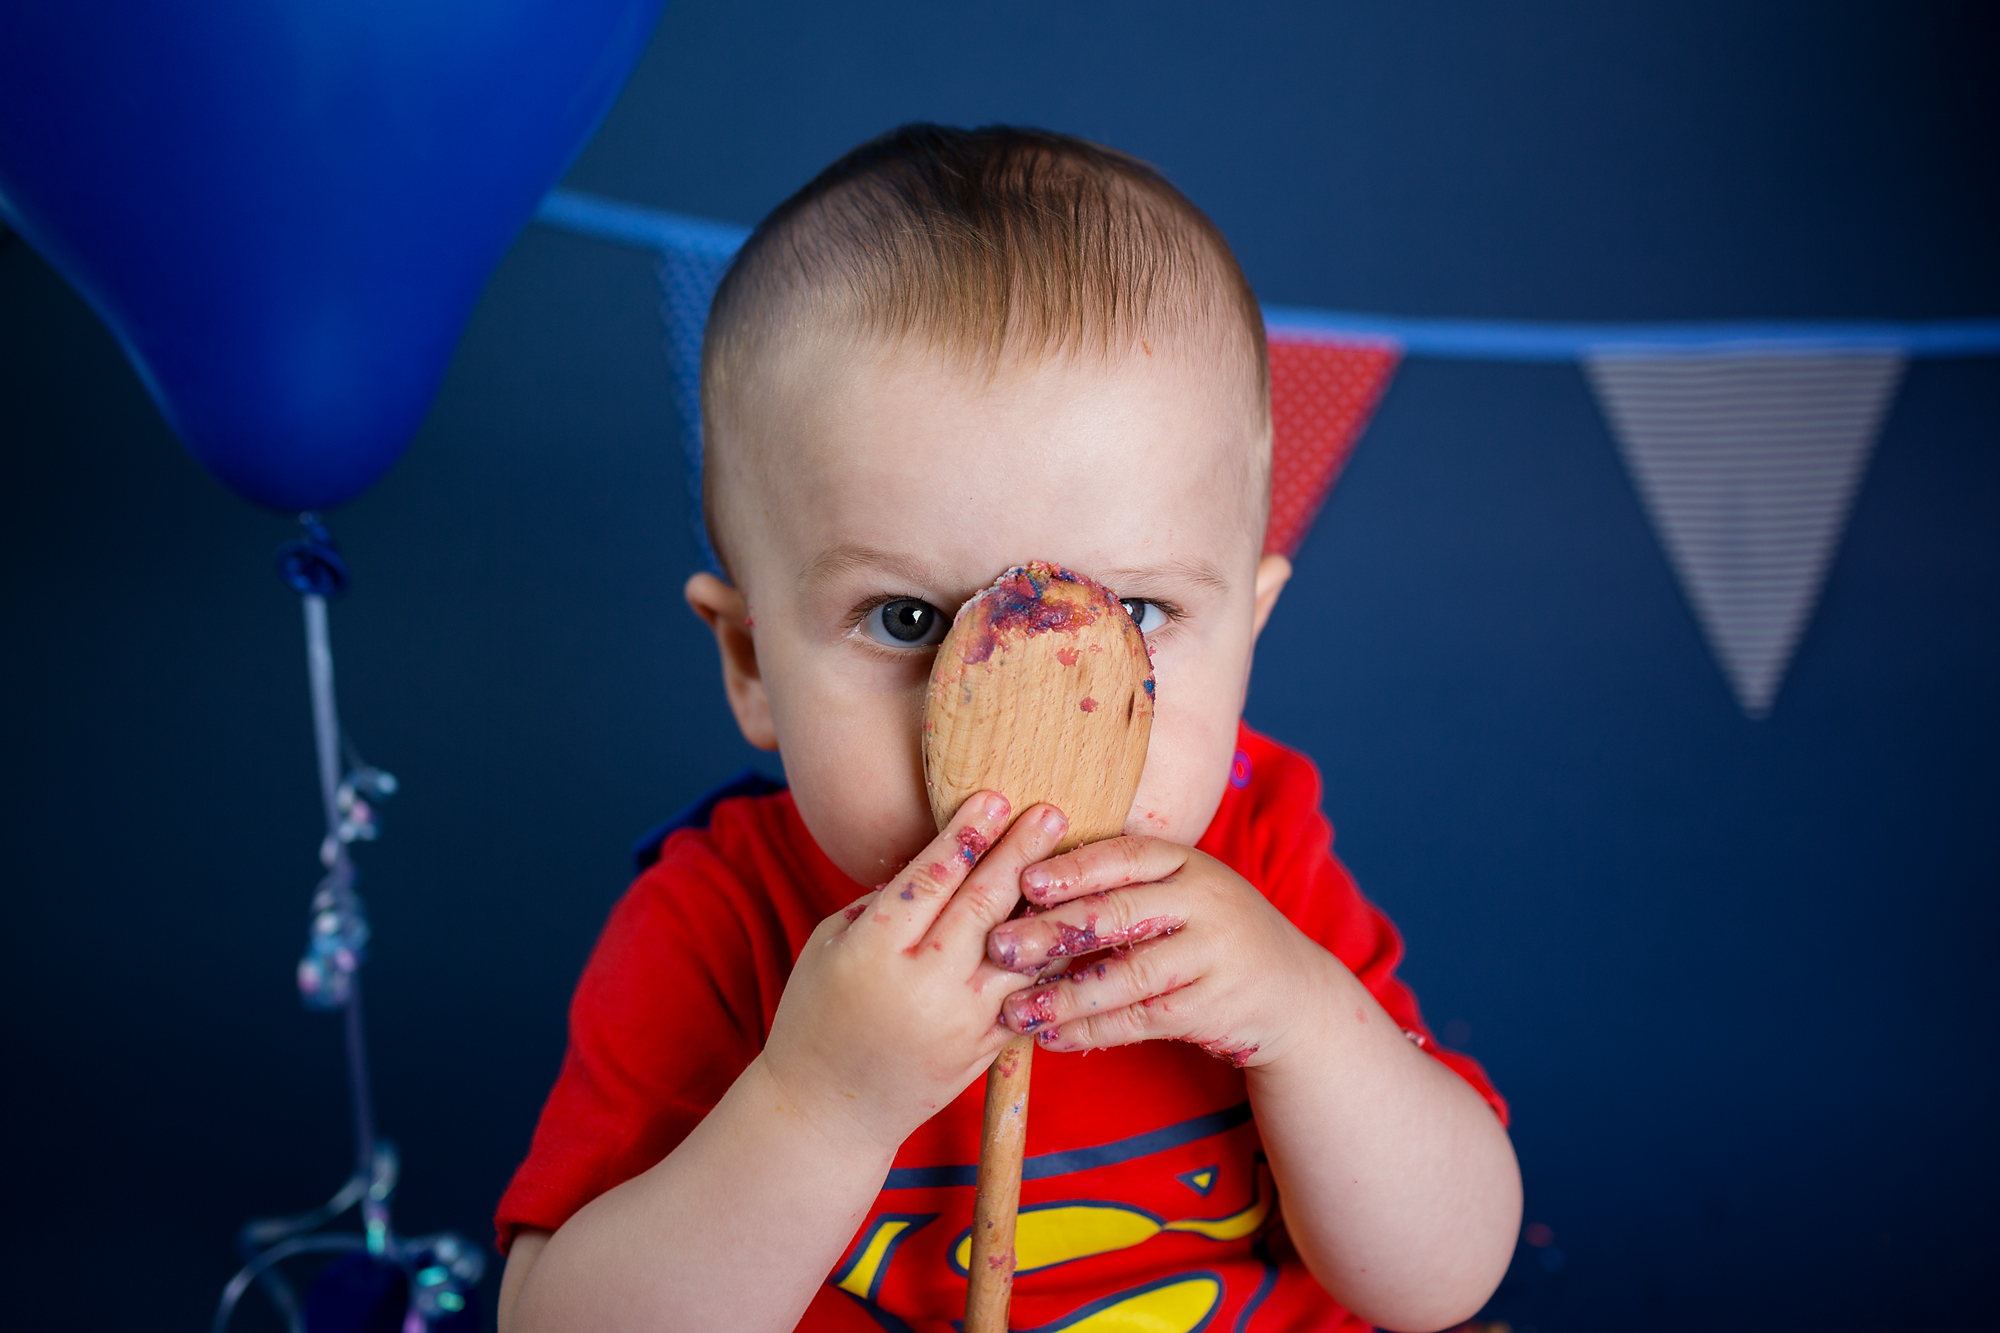 Cake Smash and first birthday photographer, Caerphilly near Cardiff, South Wales